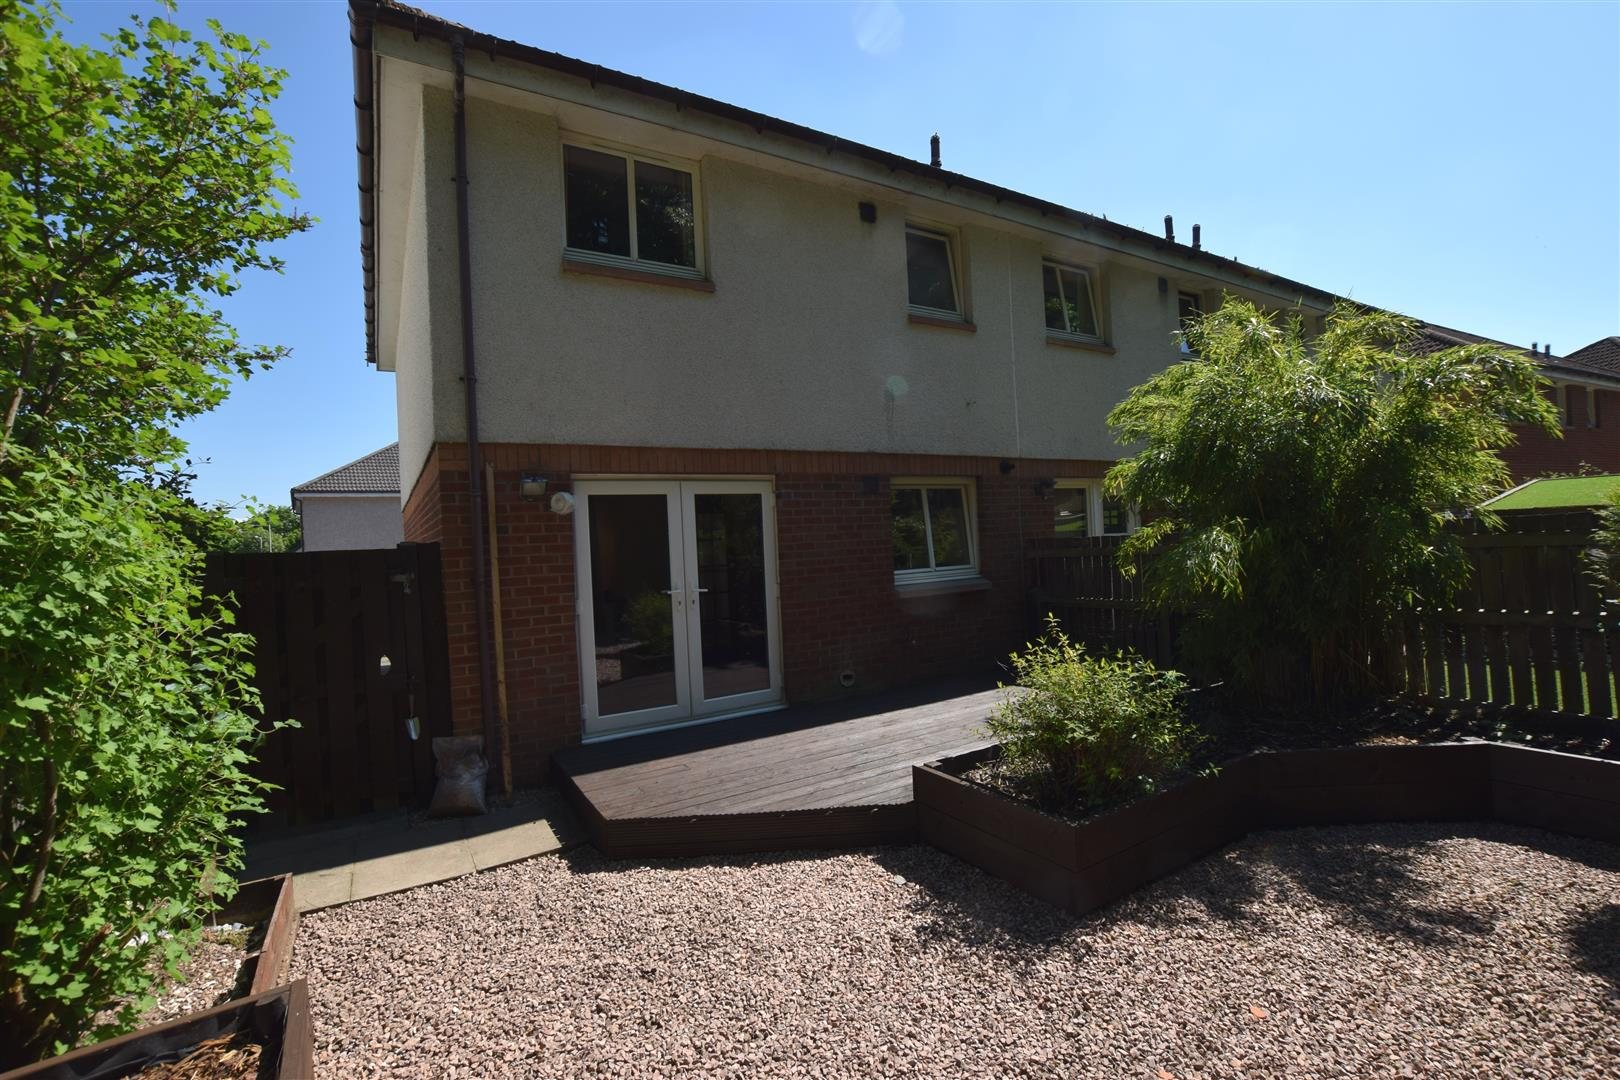 Bracken Brae, Perth, Perthshire, PH1 2SF, UK